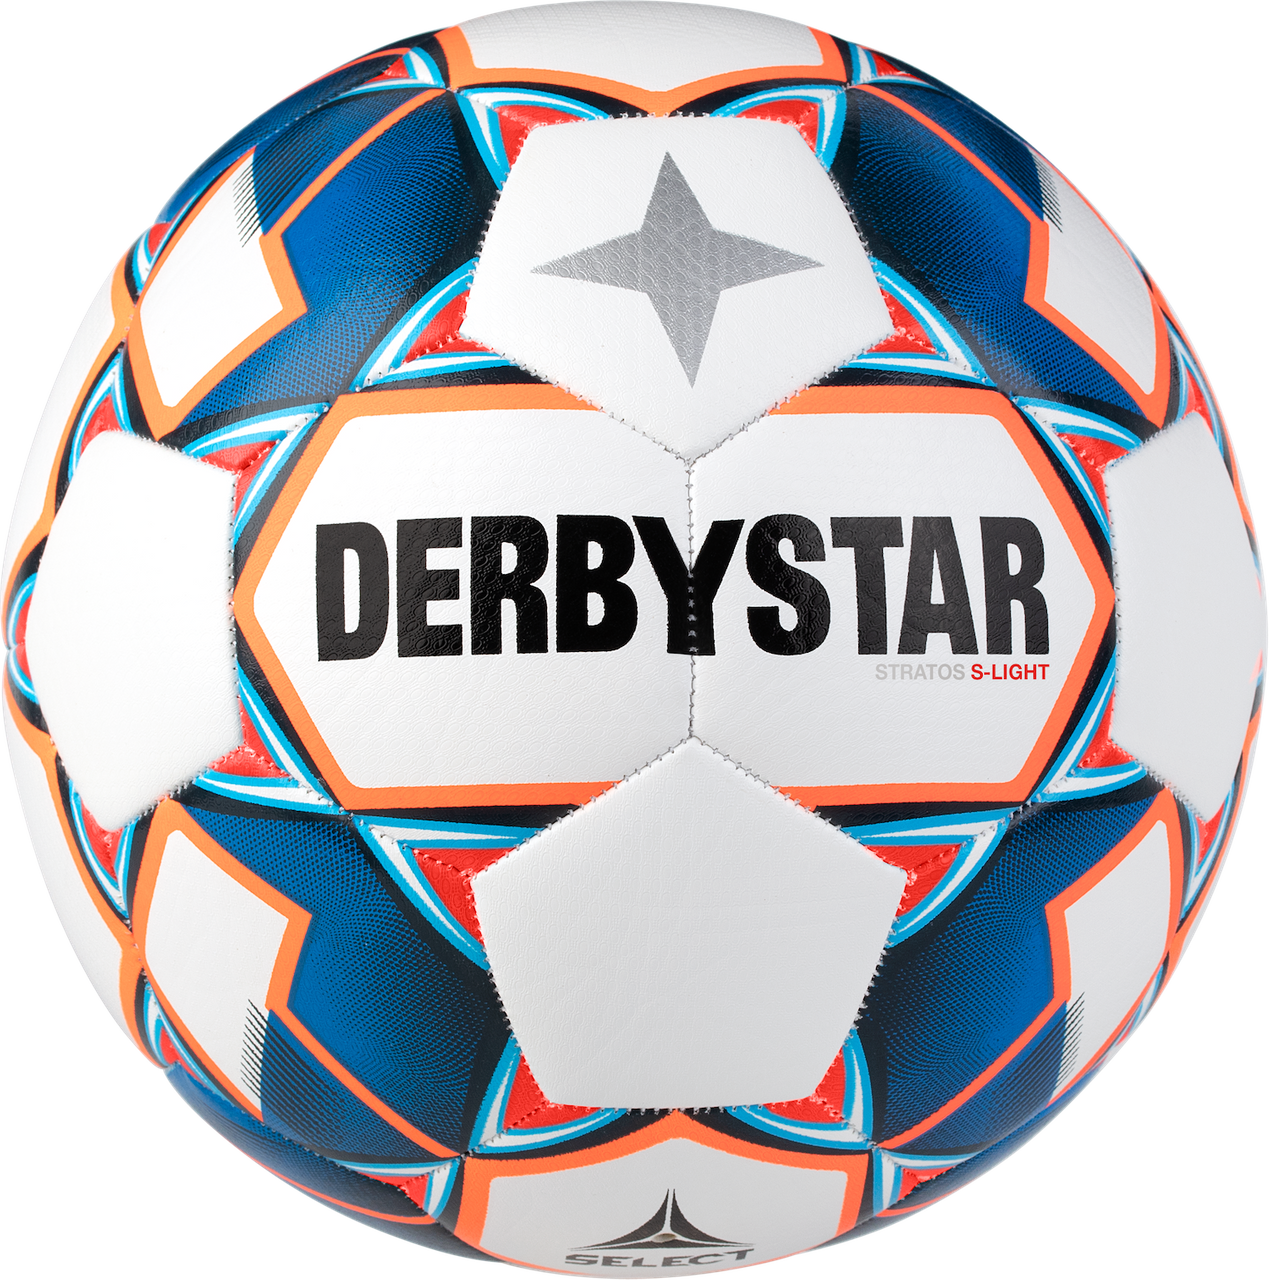 DERBYSTAR Youth Ball - STRATOS S-LIGHT